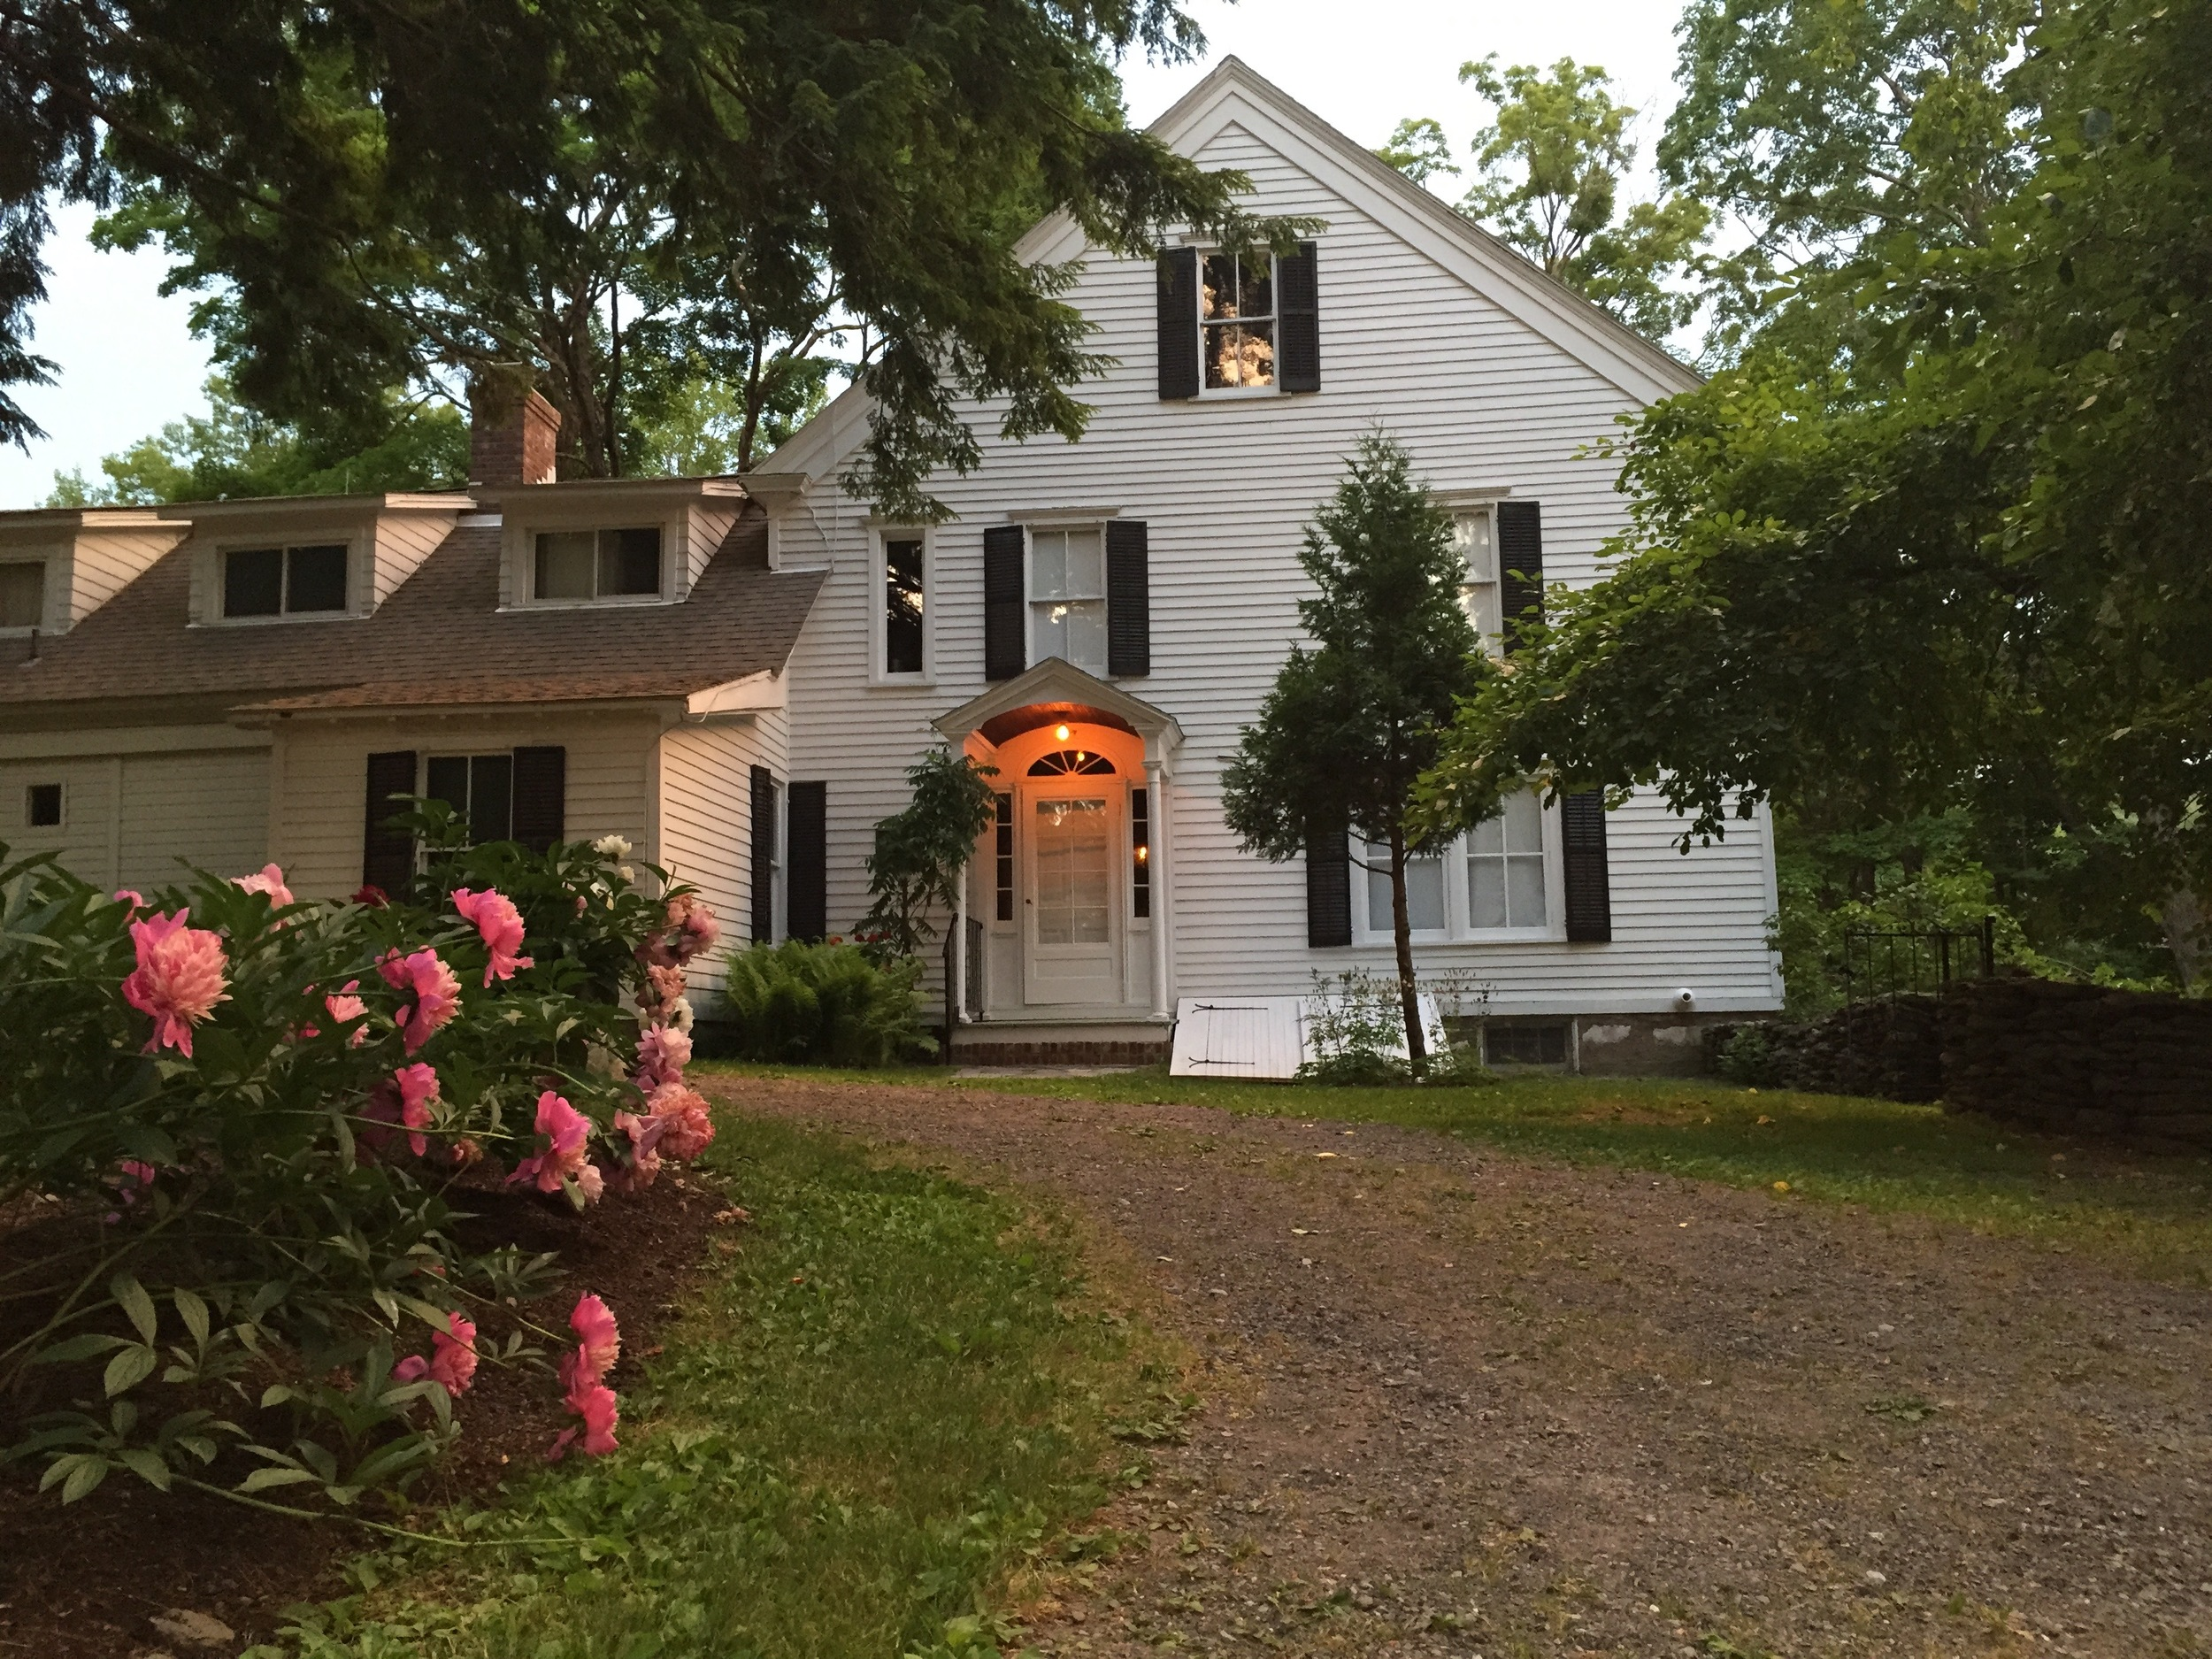 Home of Edna St. Vincent Millay